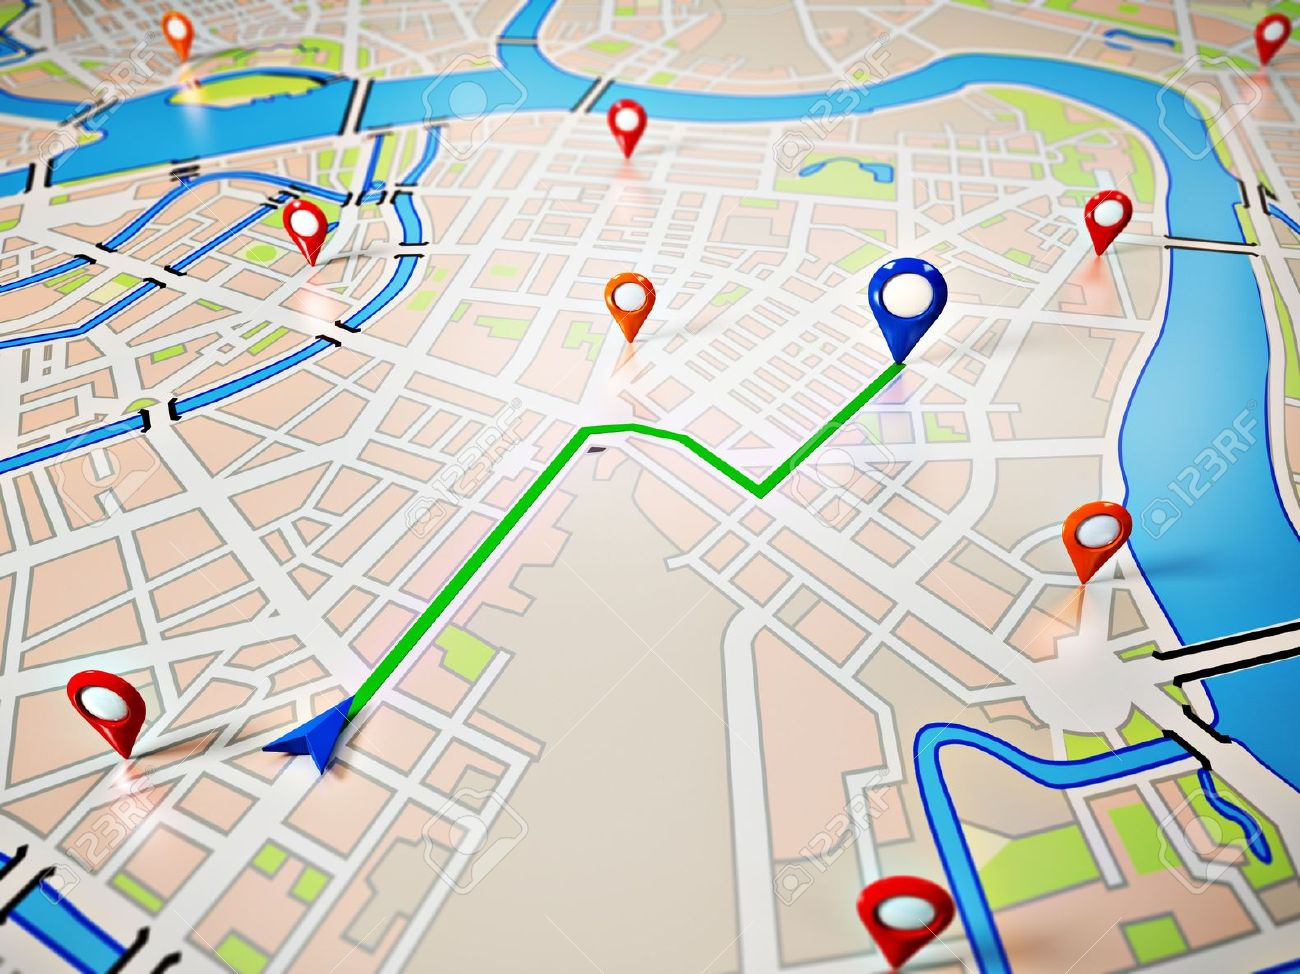 How To Track A Cell Phone Location >> Free GPS Tracker: How to track a cell phone location